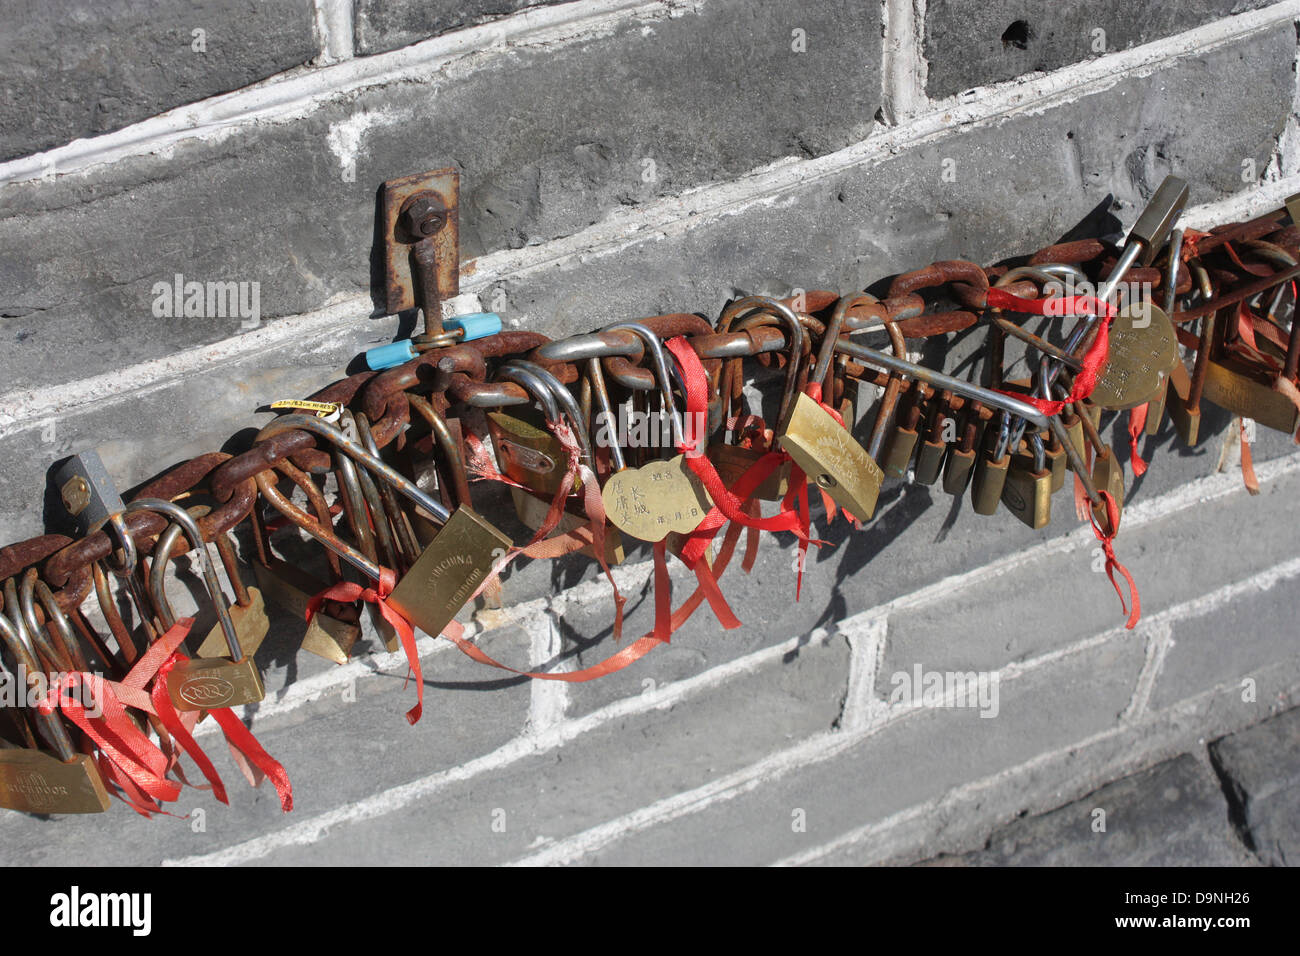 Keys and padlocks chained to the Great Wall of China along with red ribbons represent good luck charms and key symbolism. - Stock Image